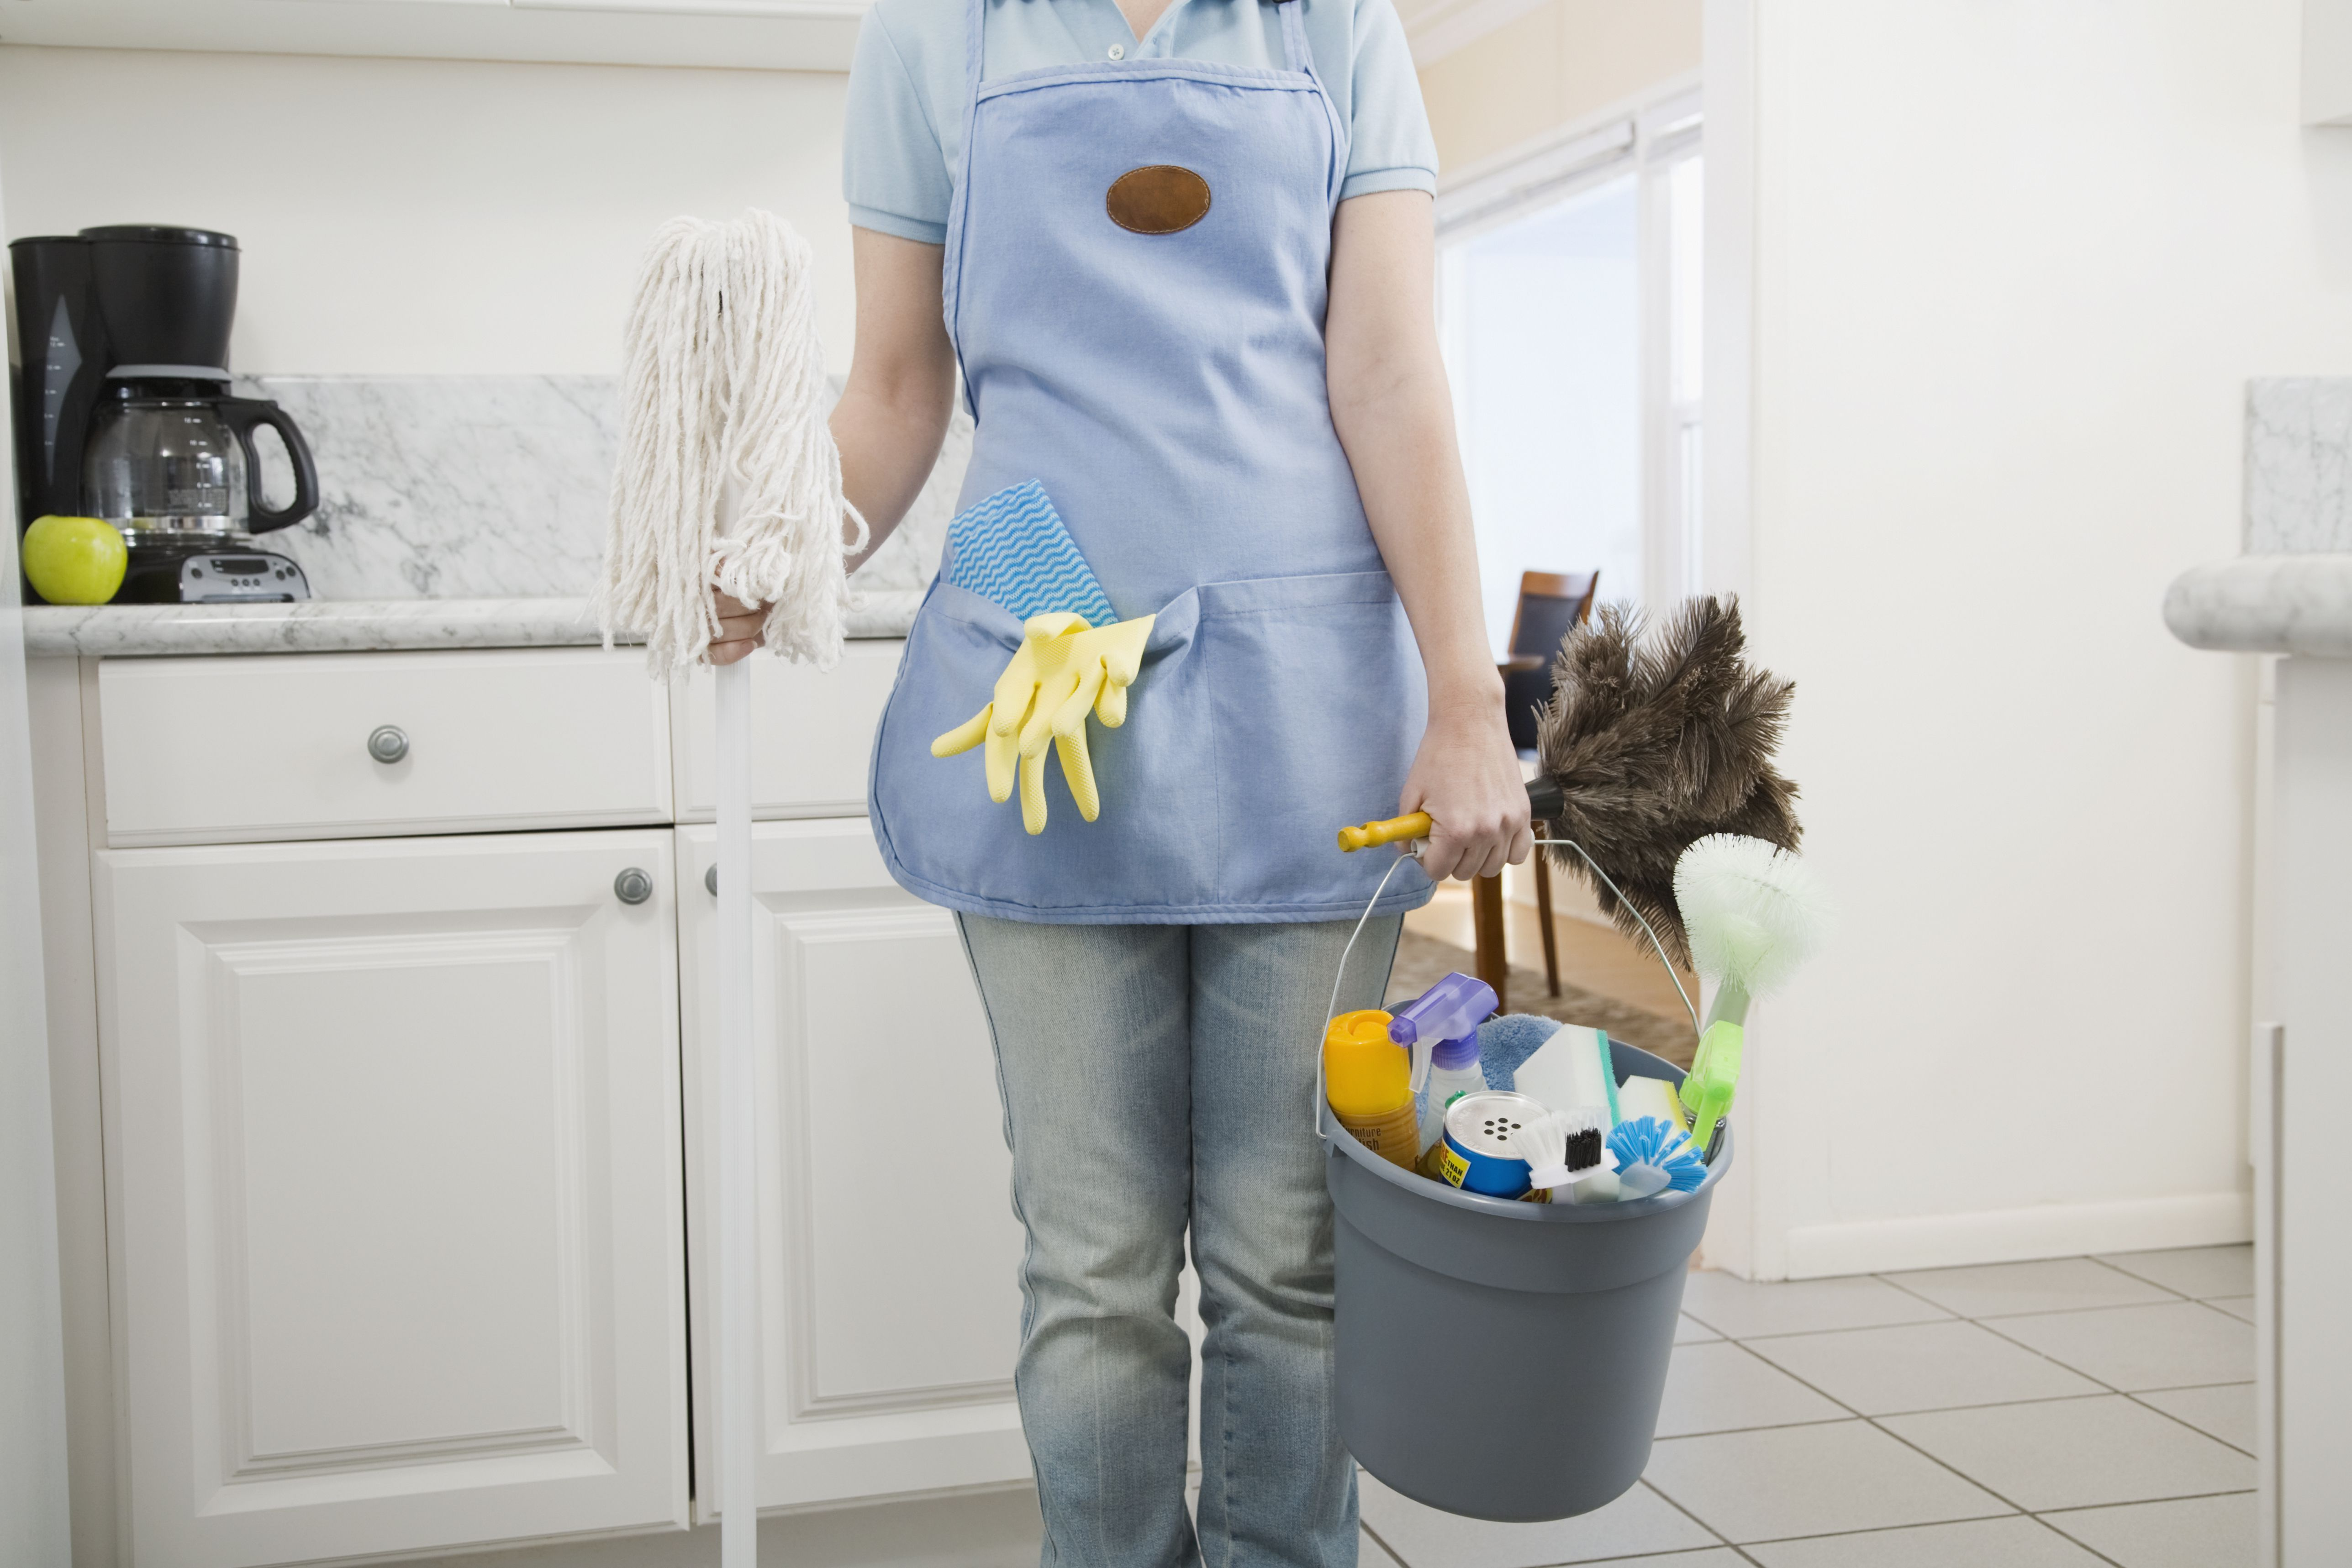 Woman holding mop and cleaning supplies